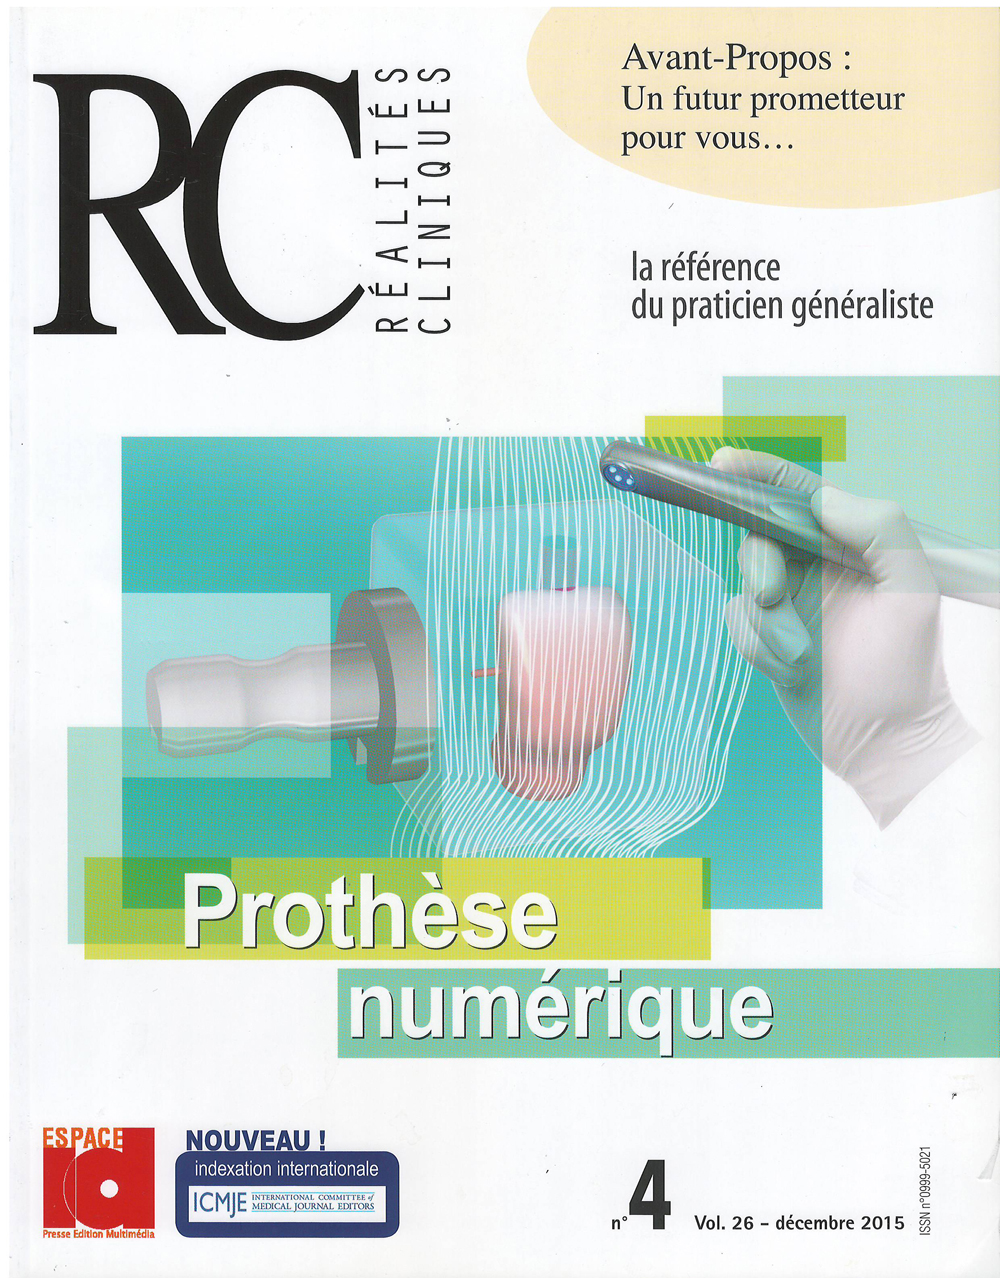 REALITES CLINIQUES (PRATICIENTS)